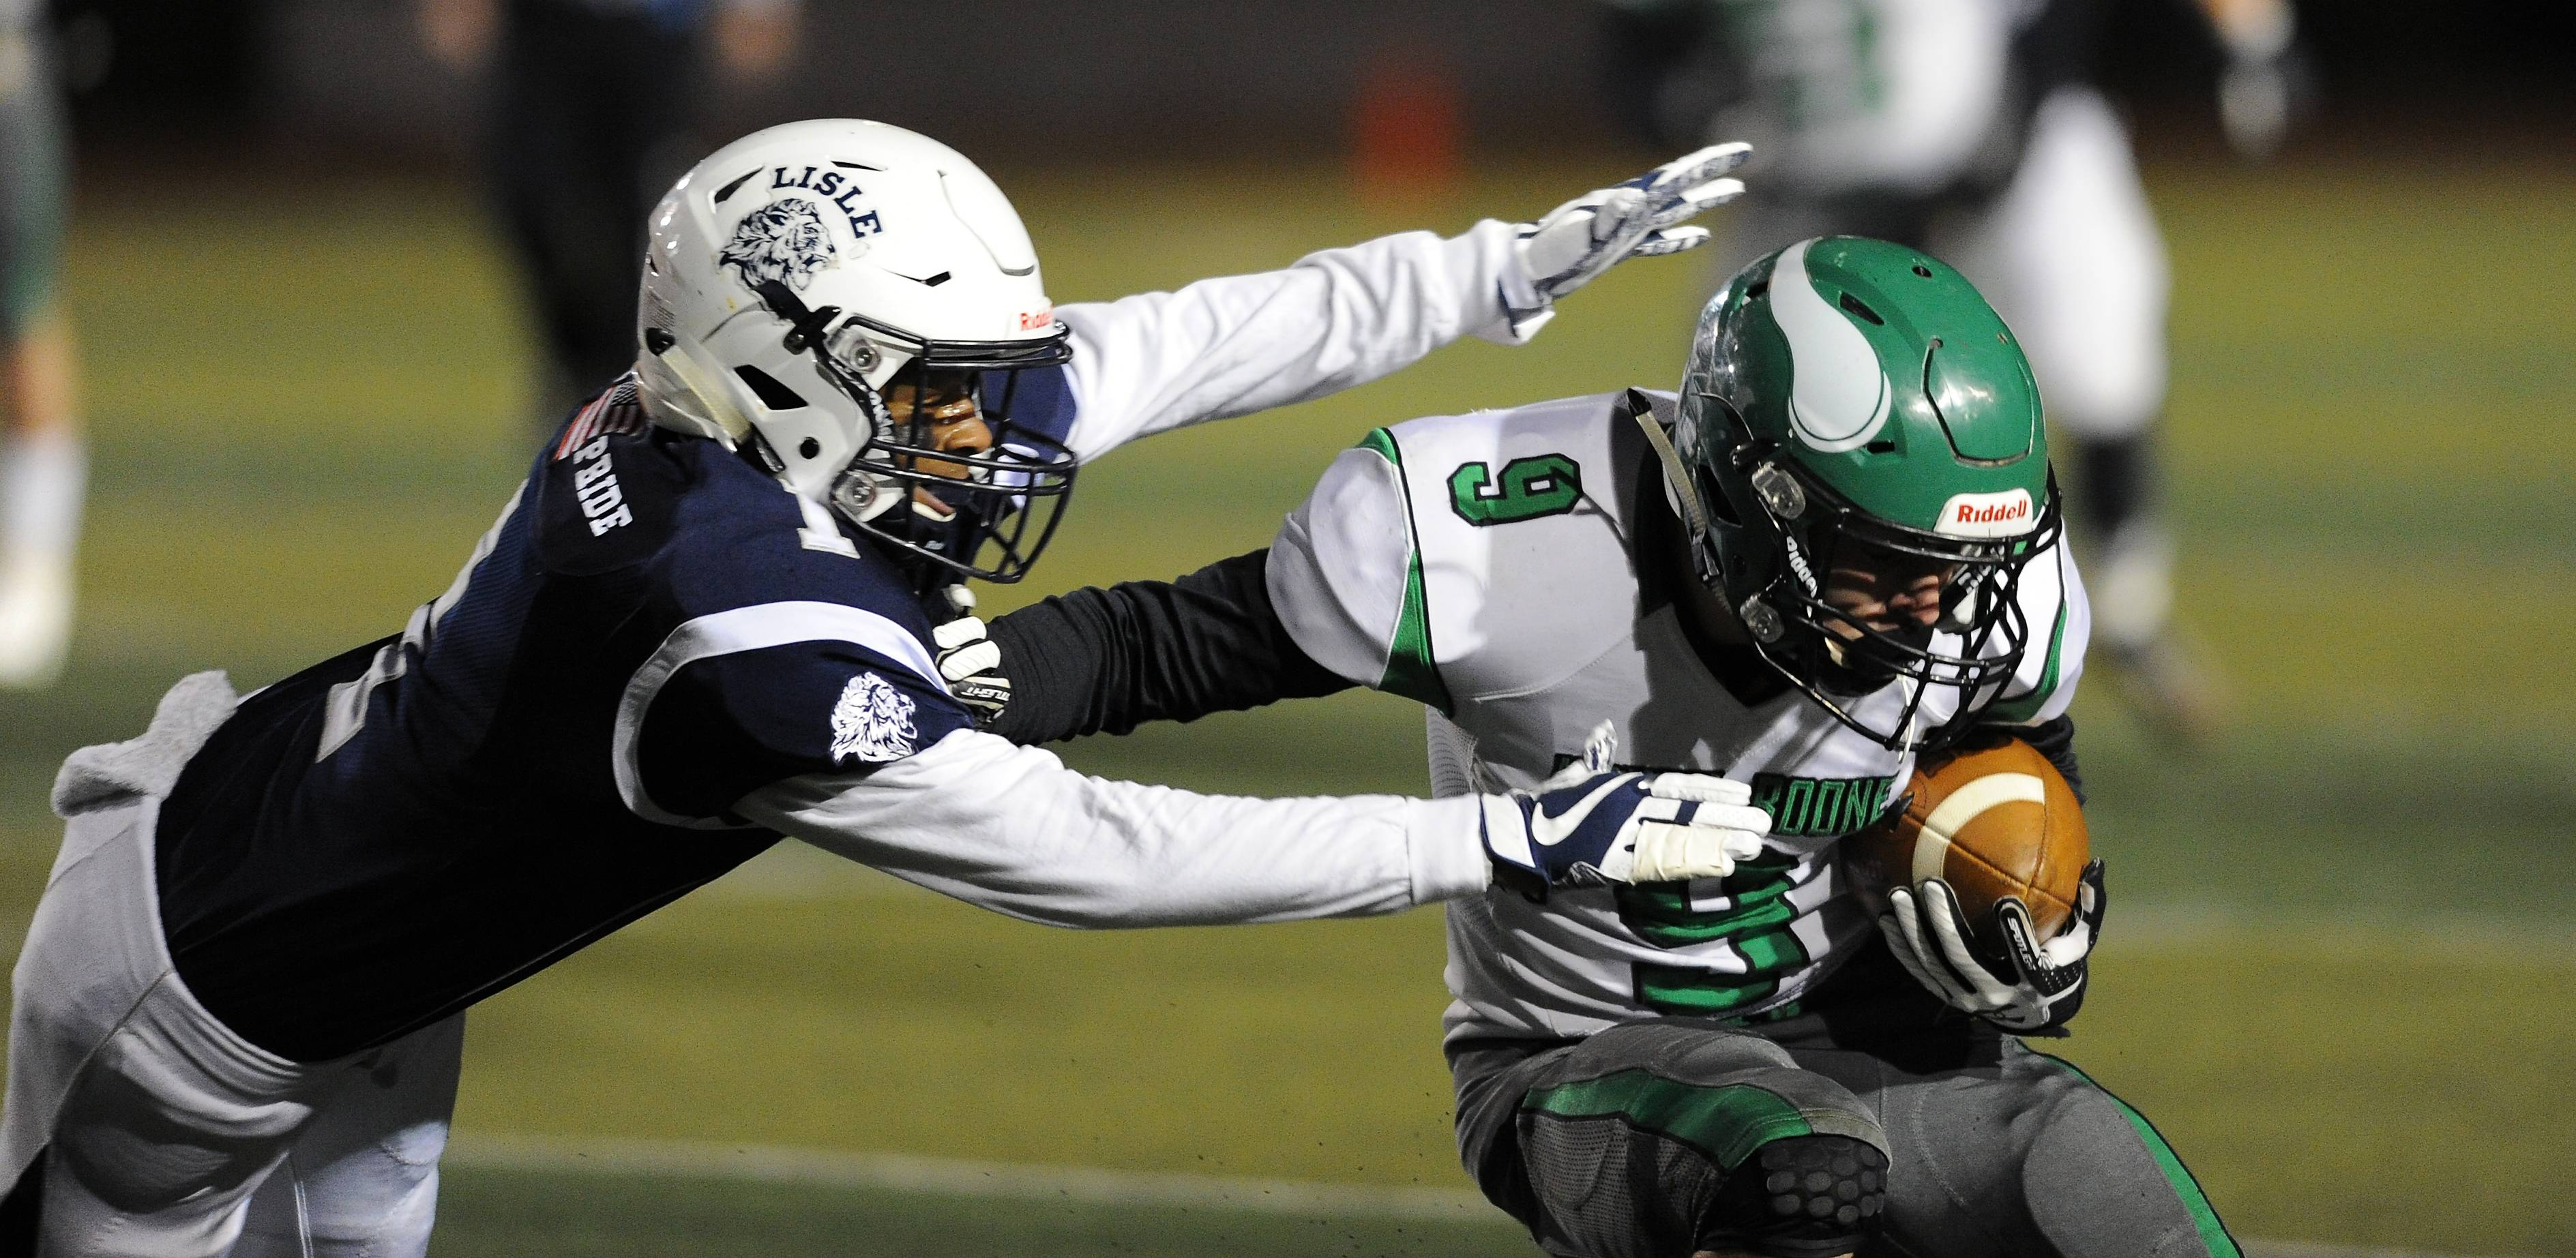 Images: Lisle vs. North Boone, Playoff Round 2 football